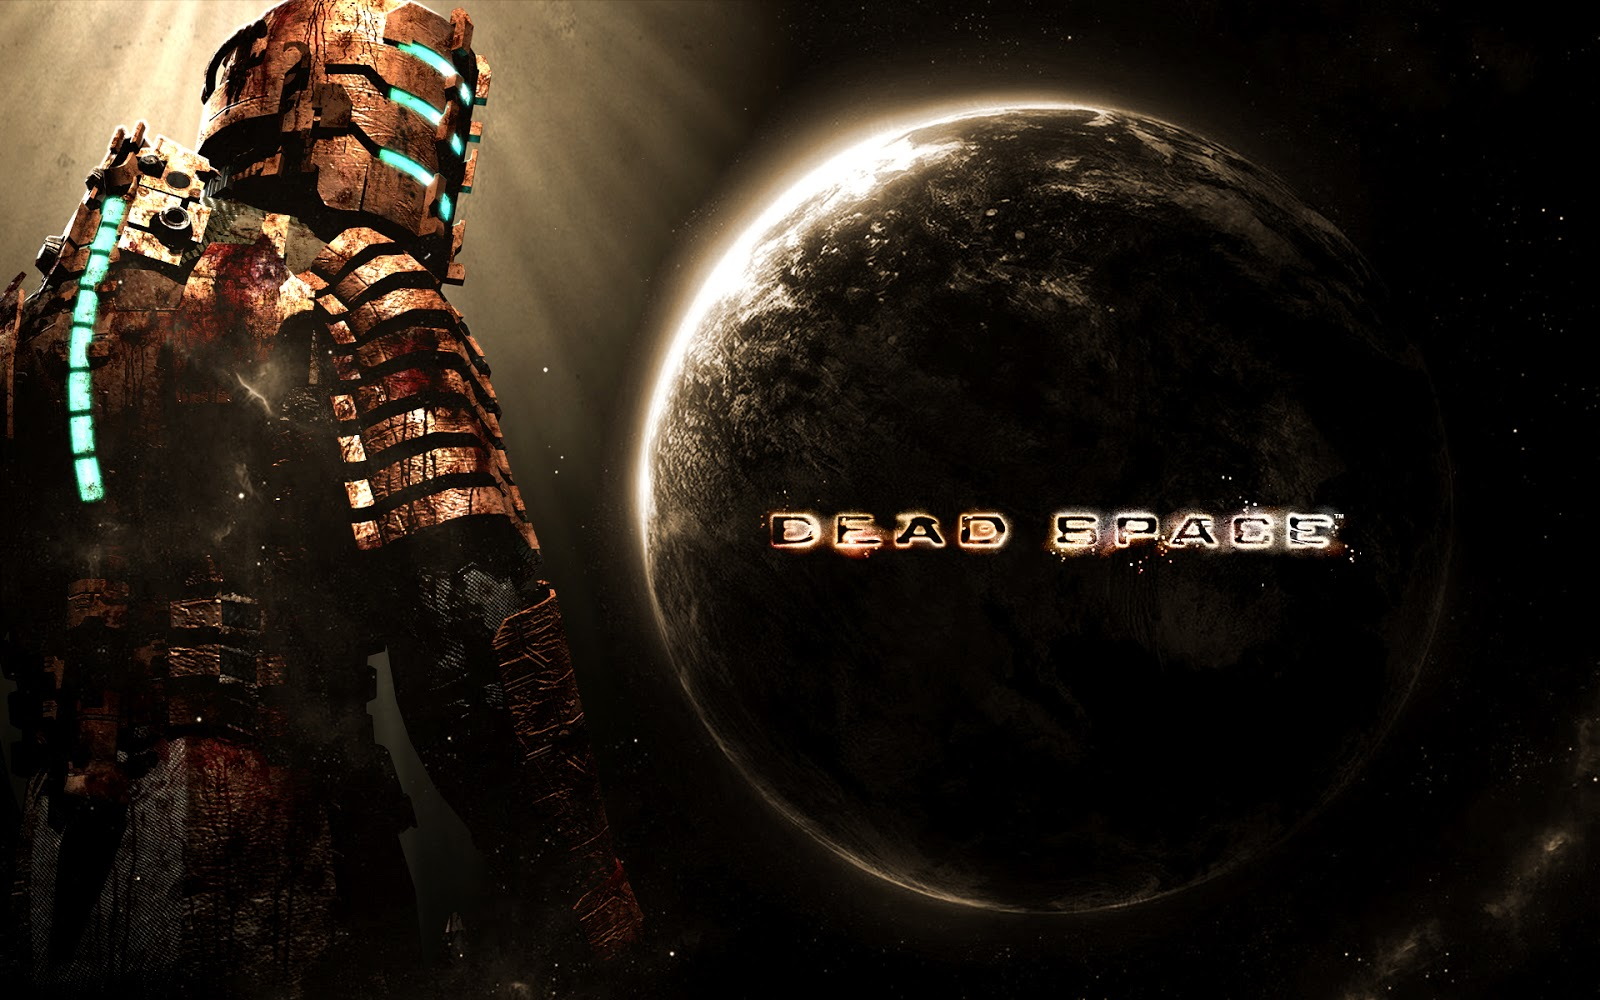 Bristolian Gamer Dead Space Review Resident Evil 4 in space